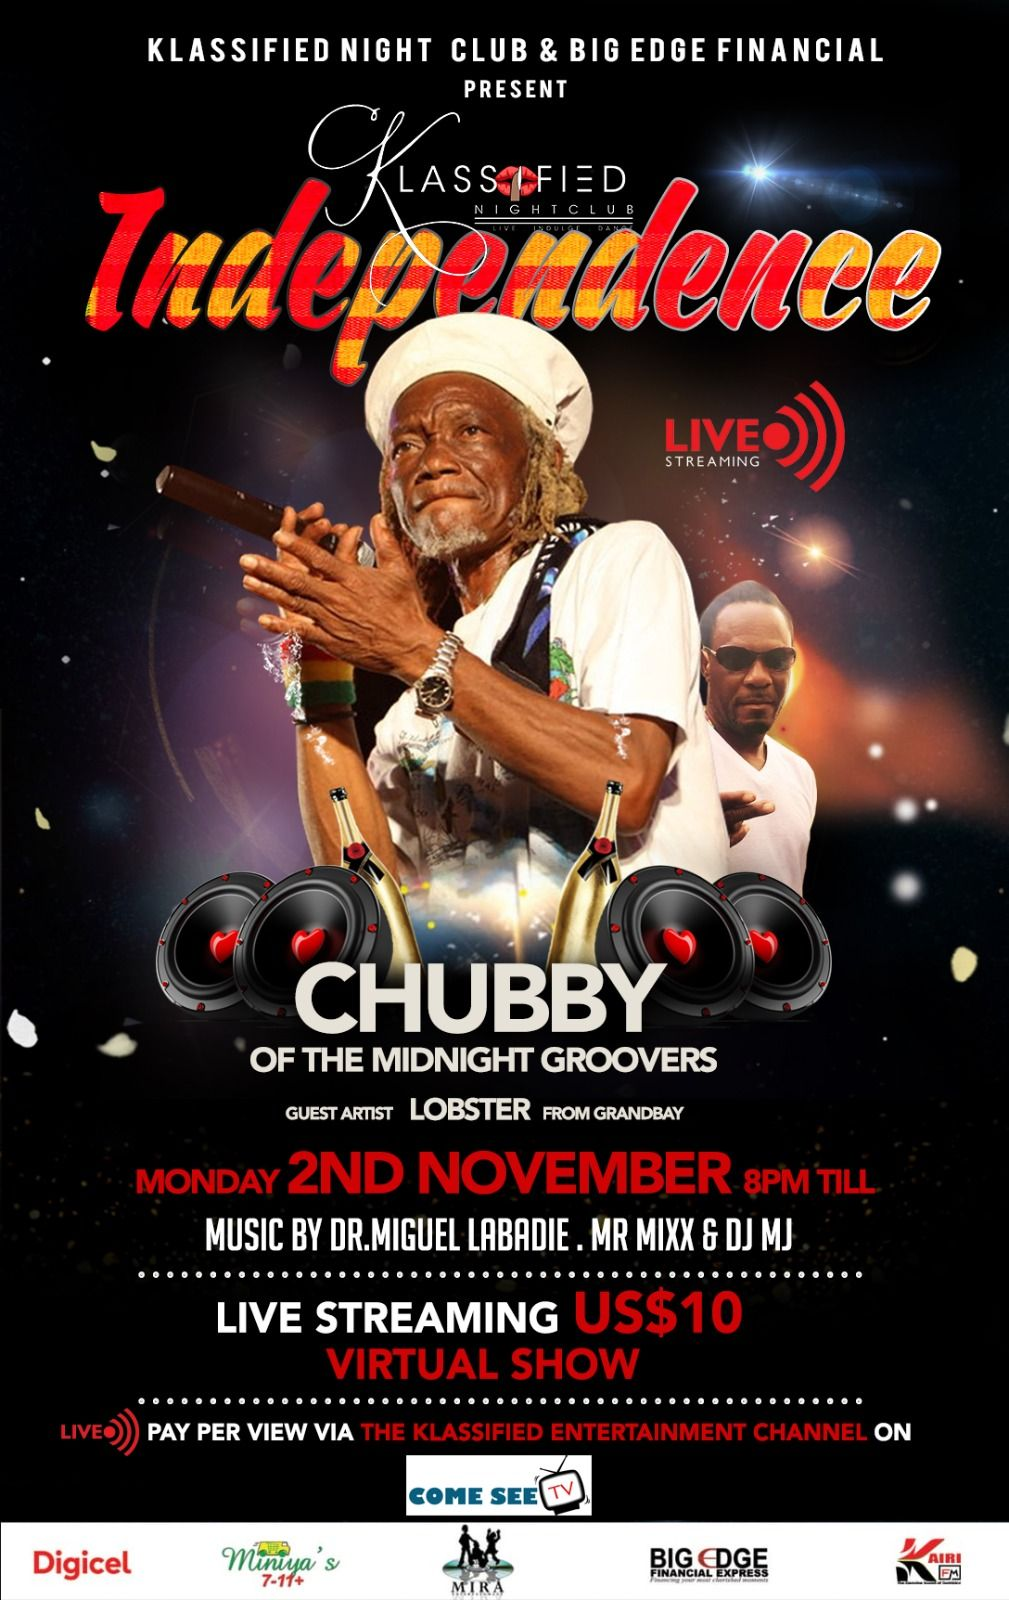 A Klassified Independence featuring Chubby of the Midnight Groovers, November 2nd 2020